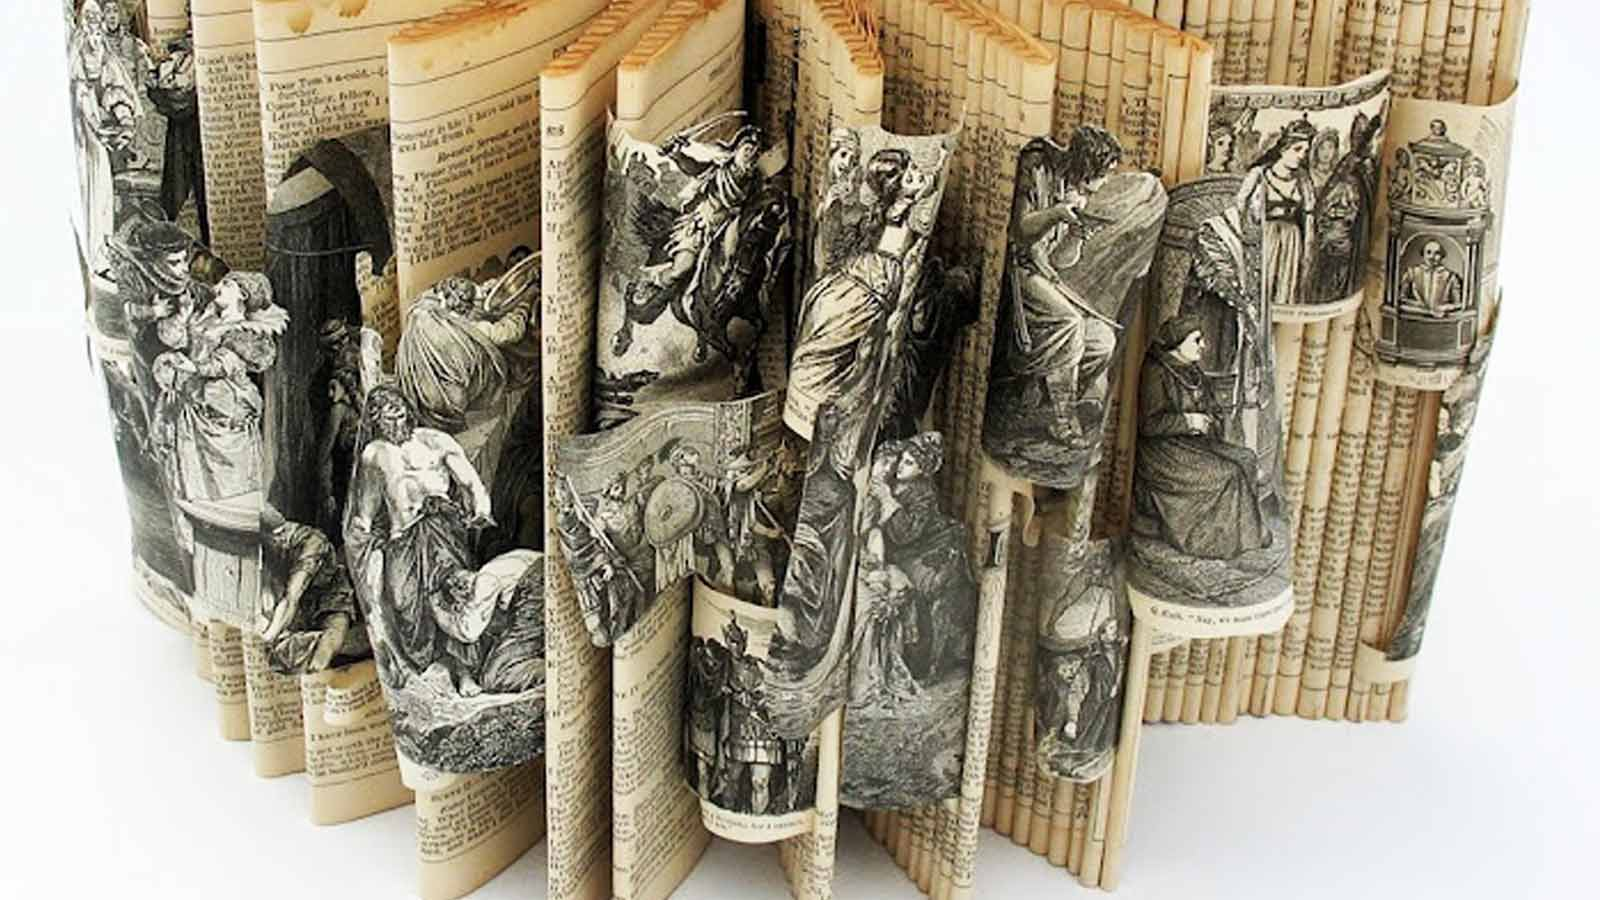 'The Complete Works of Shakespeare' book sculpture (2014), Anita Francis | source: Anita Francis, author provided